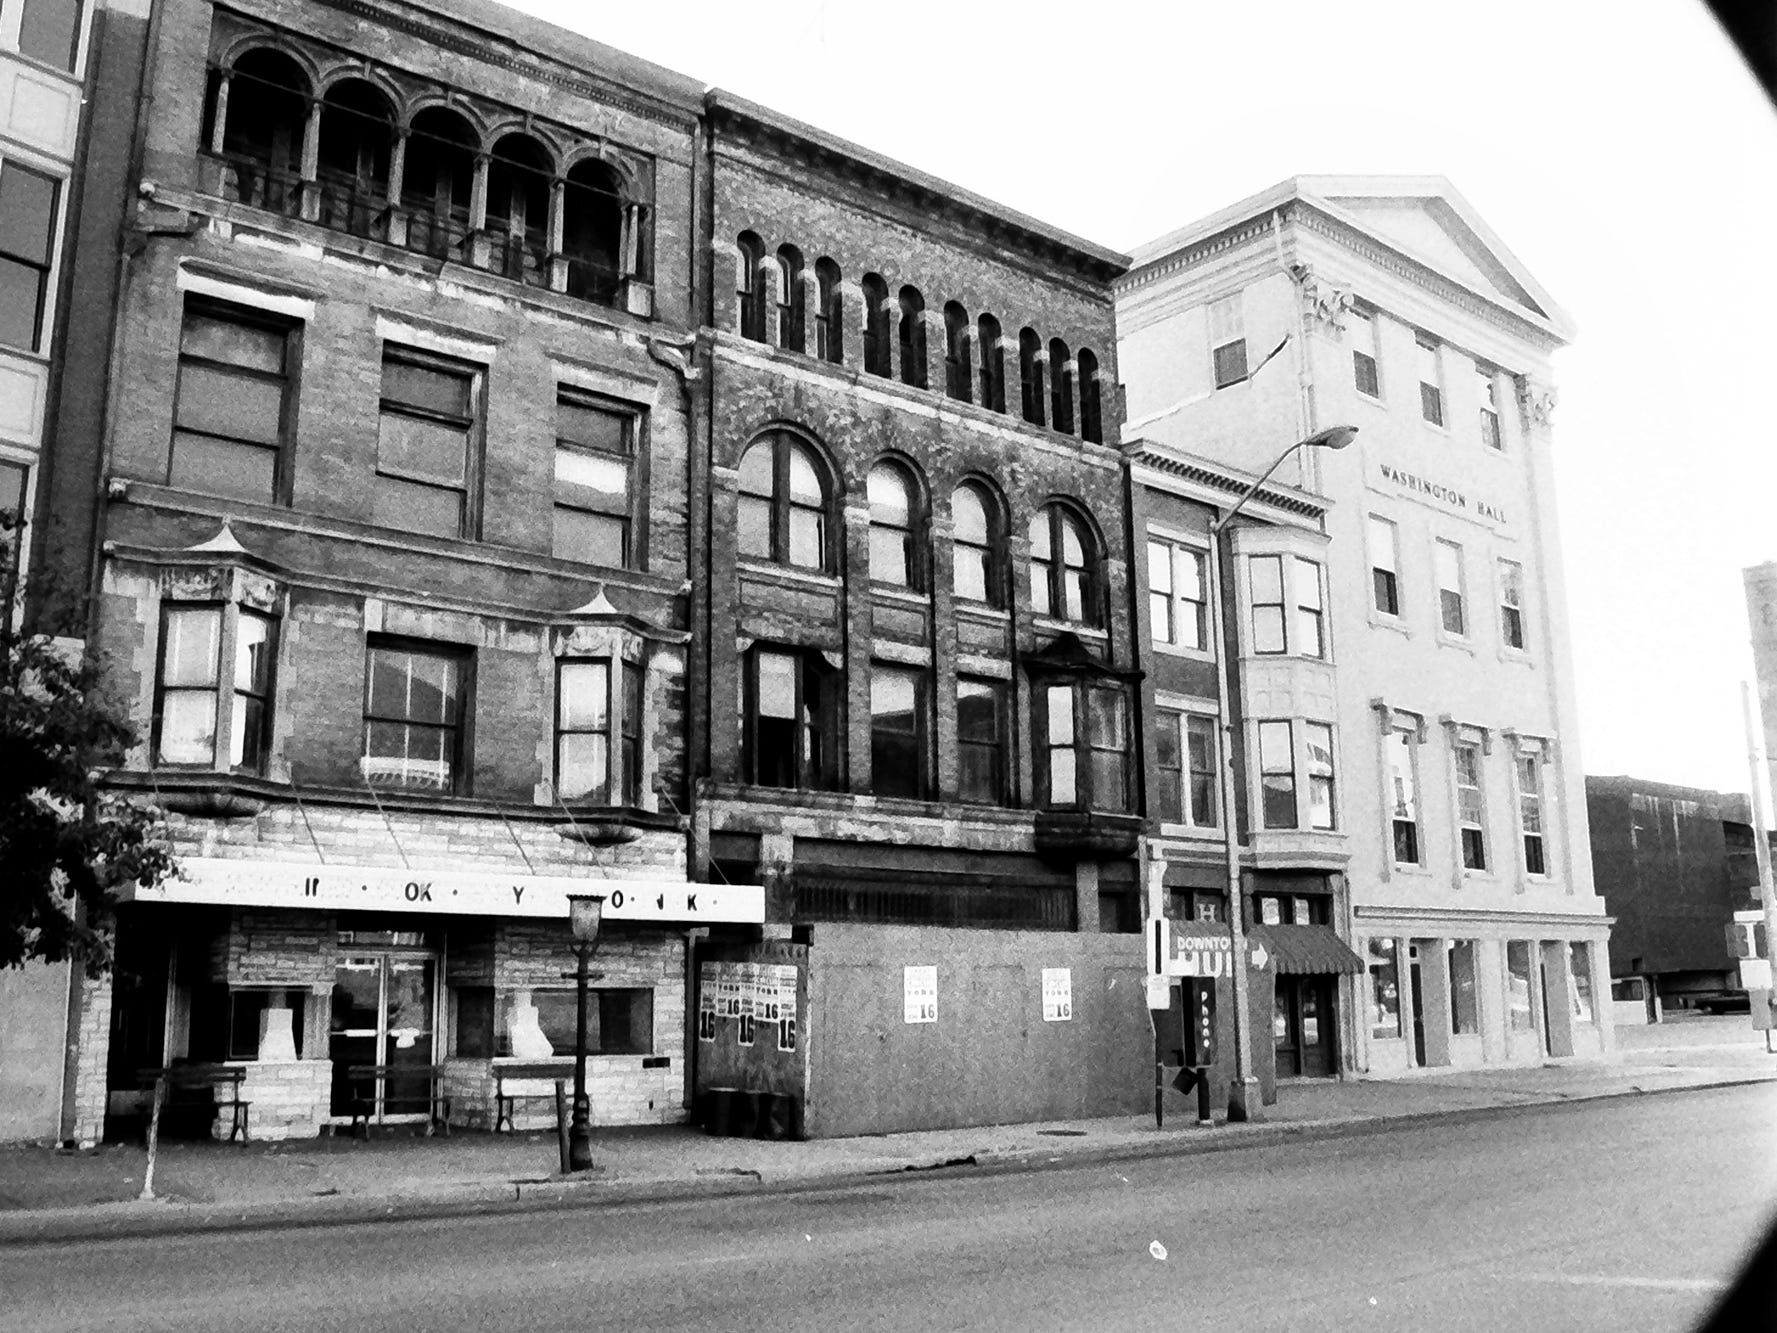 In 1985, a row of dilapidated buildings on the west side of the 200 block of South George street were about to be revitalized. The facade's were retained and a modern building with a parking garage was constructed inside and beneath. It was the home of the York Daily Record in the 1990s and today the home of Family First Health. Washington Hall, at right, stands as it did in 1985.